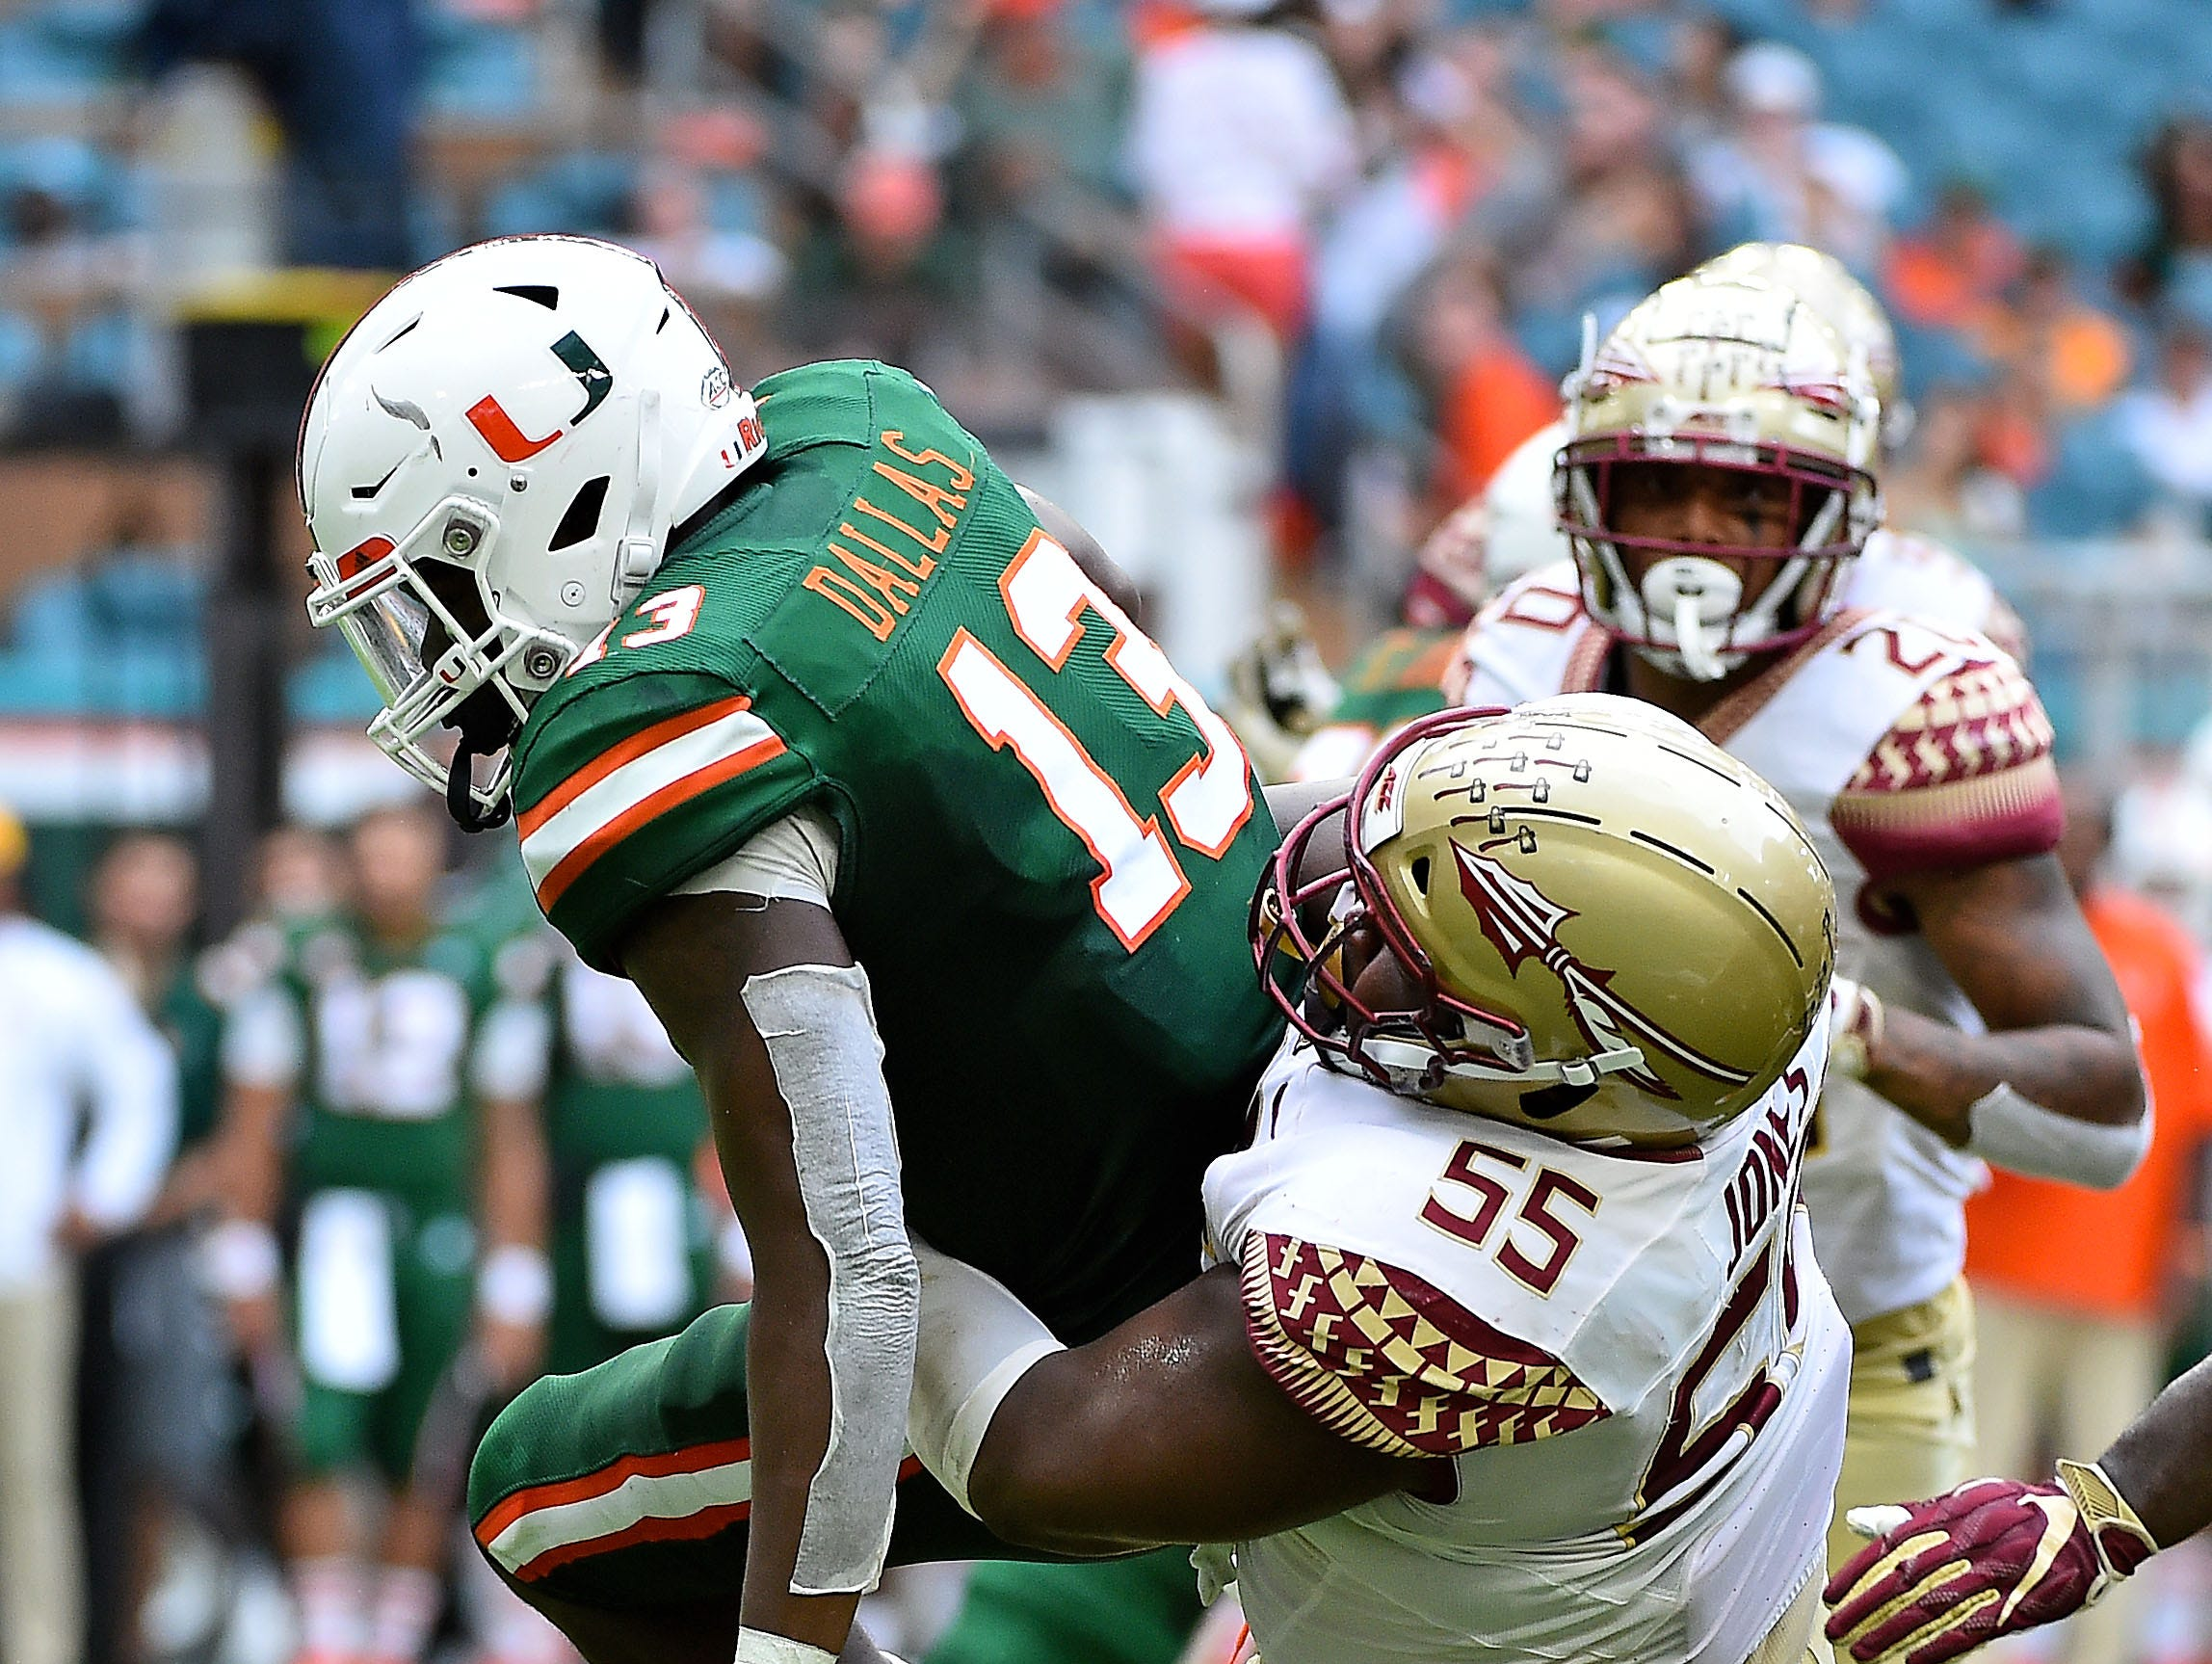 Oct 6, 2018; Miami Gardens, FL, USA; Florida State Seminoles defensive tackle Fredrick Jones (55) tackles Miami Hurricanes running back DeeJay Dallas (13) during the first half at Hard Rock Stadium. Mandatory Credit: Jasen Vinlove-USA TODAY Sports